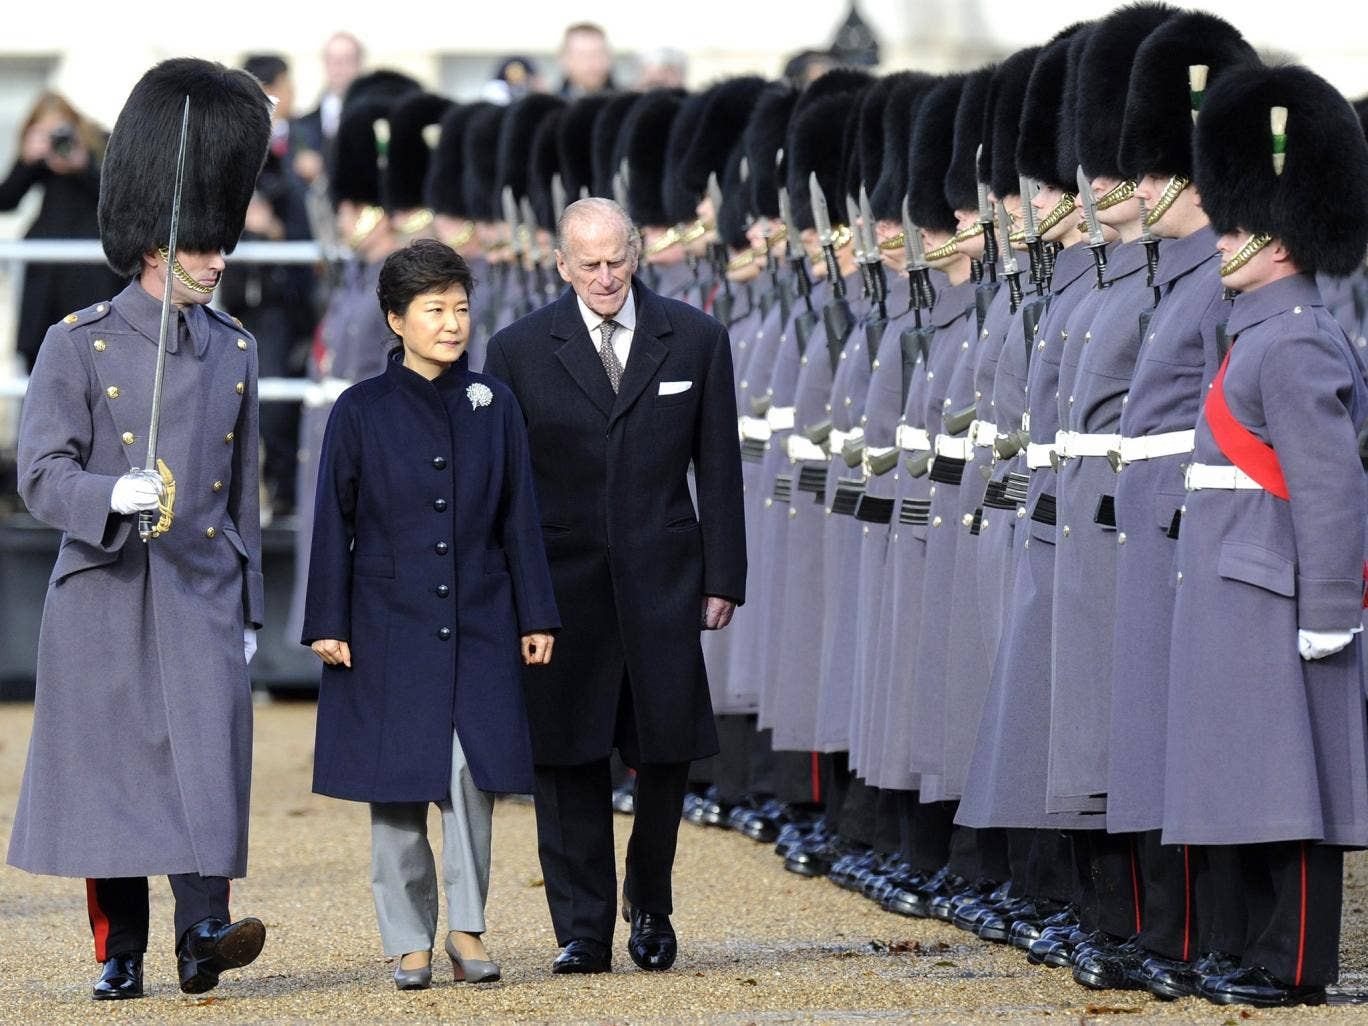 South Korean President Park Geun-hye is accompanied by Prince Philip at Horse Guards Parade in London